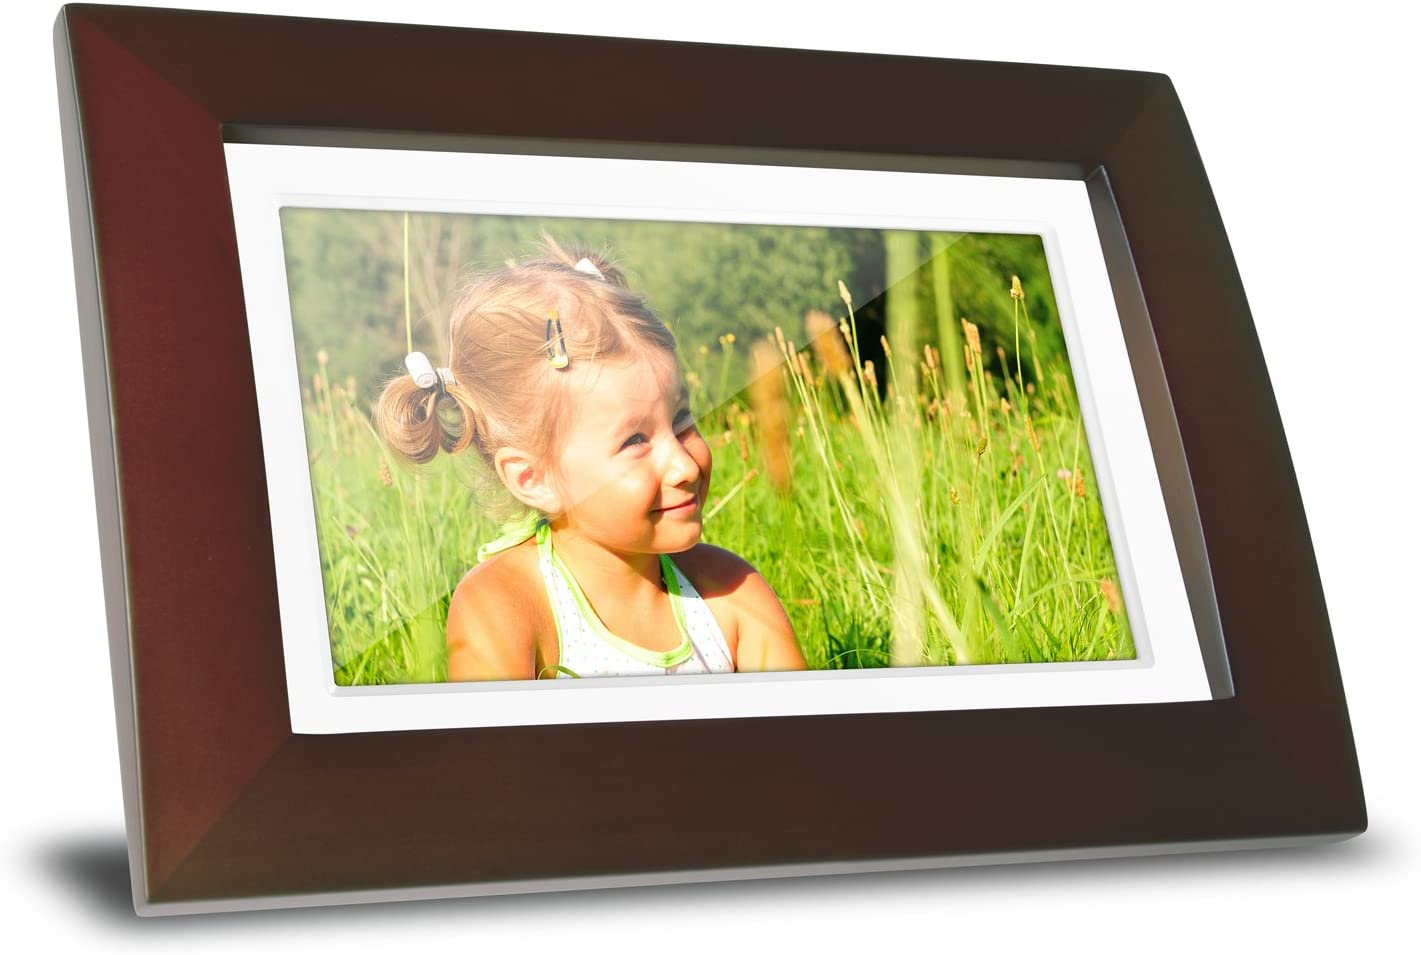 ViewSonic VFA720W-10 7-Inch Digital Picture Frame Wooden